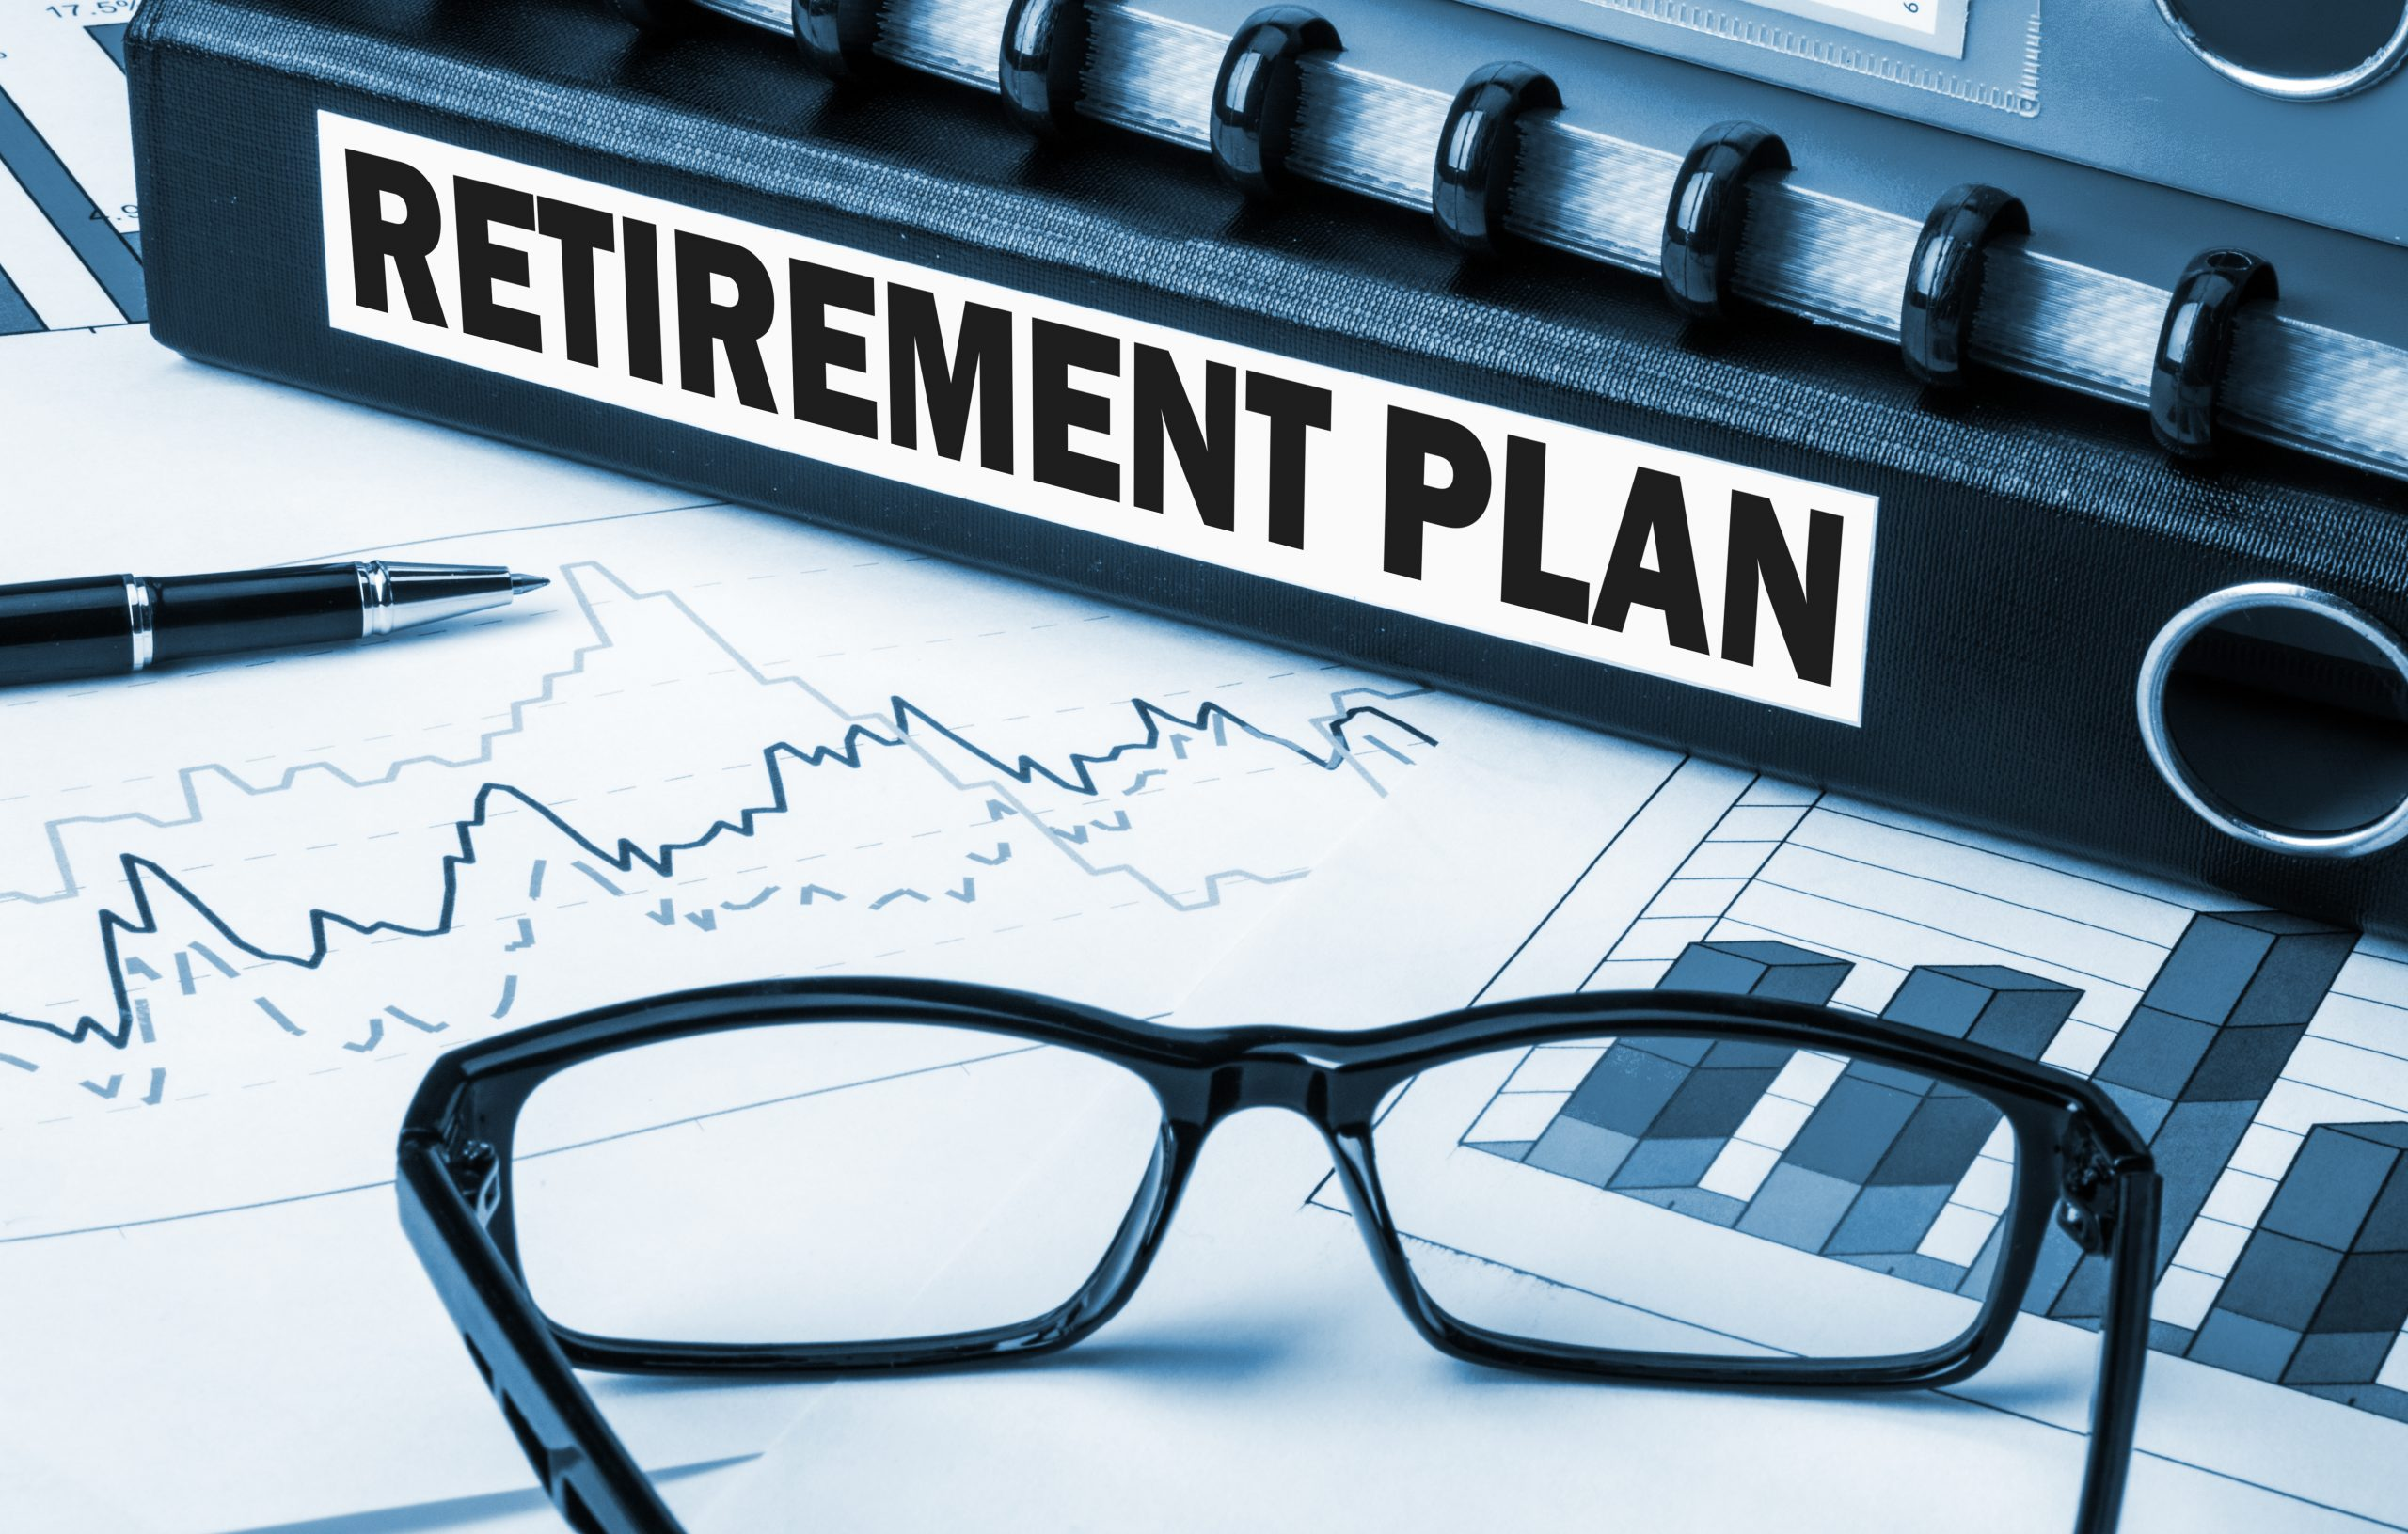 Where to start with retirement planning?